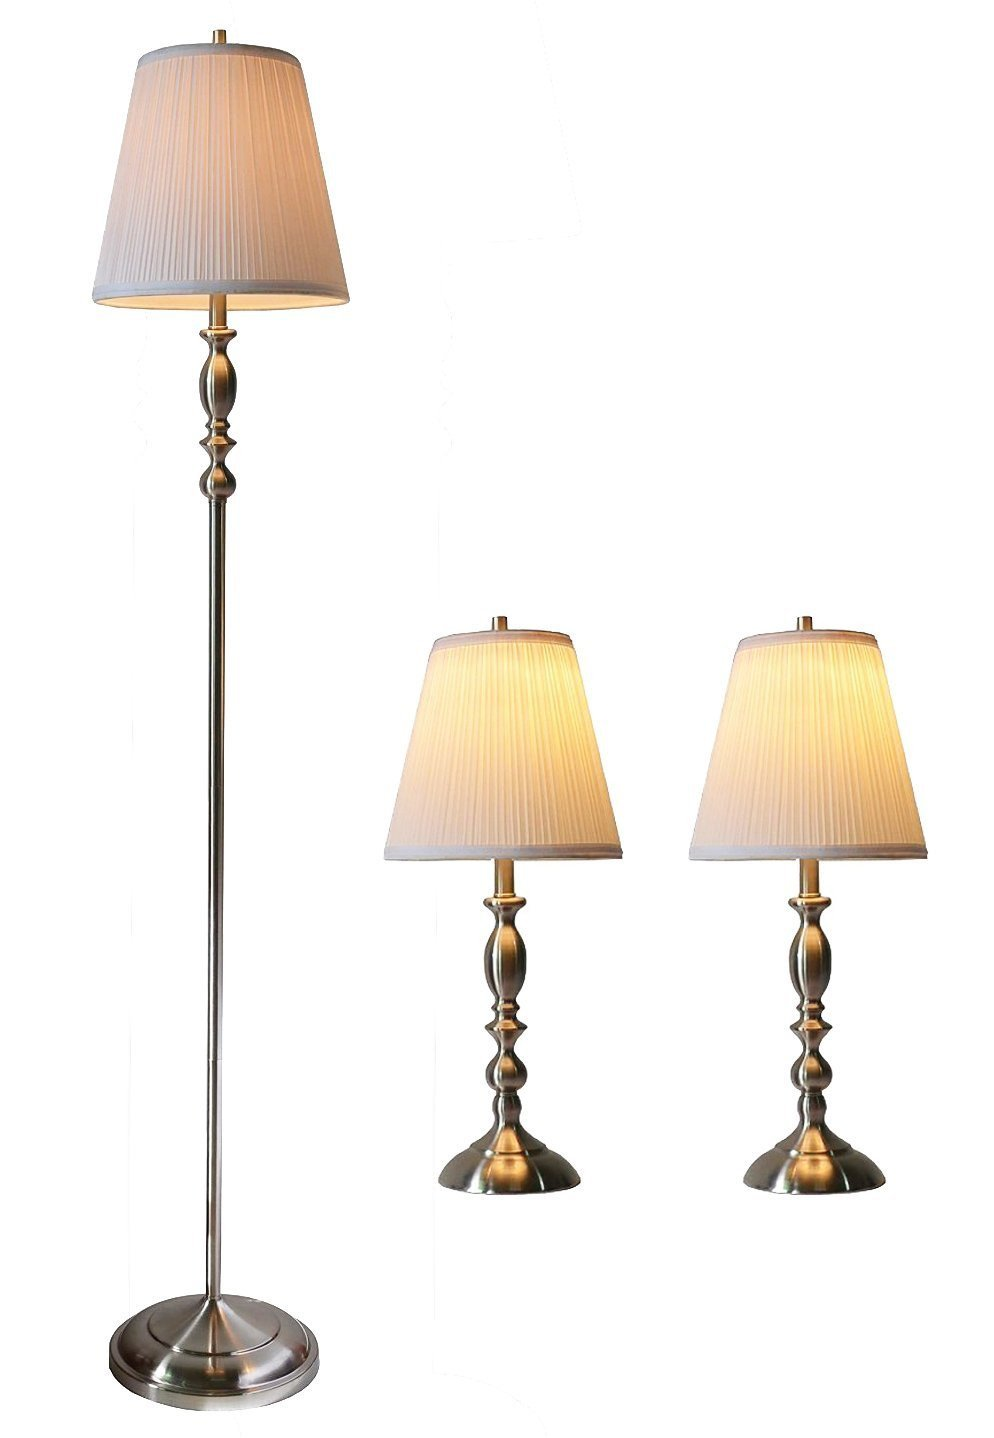 Eleanor 3 piece table and floor lamp set with shades urbanest eleanor 3 piece table and floor lamp set with shades aloadofball